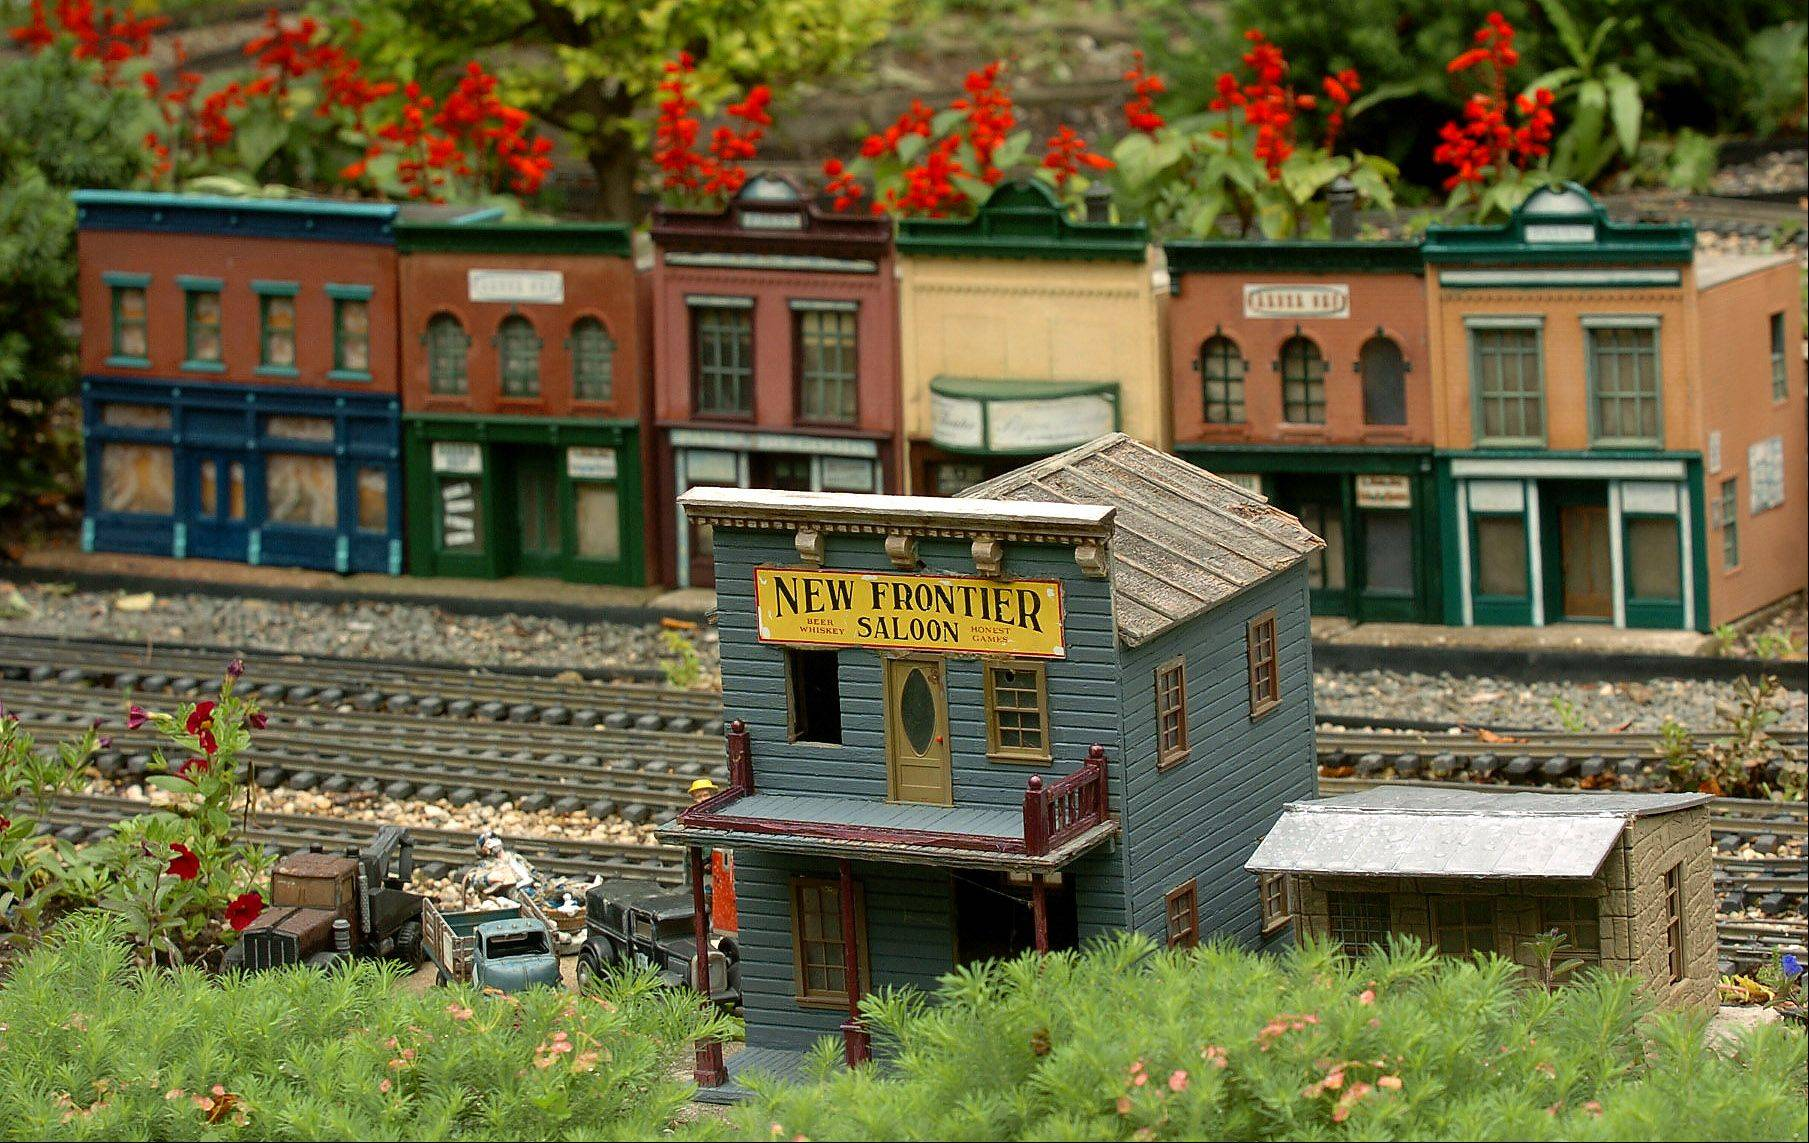 Custom made buildings on Elaine Silets' garden railroad.